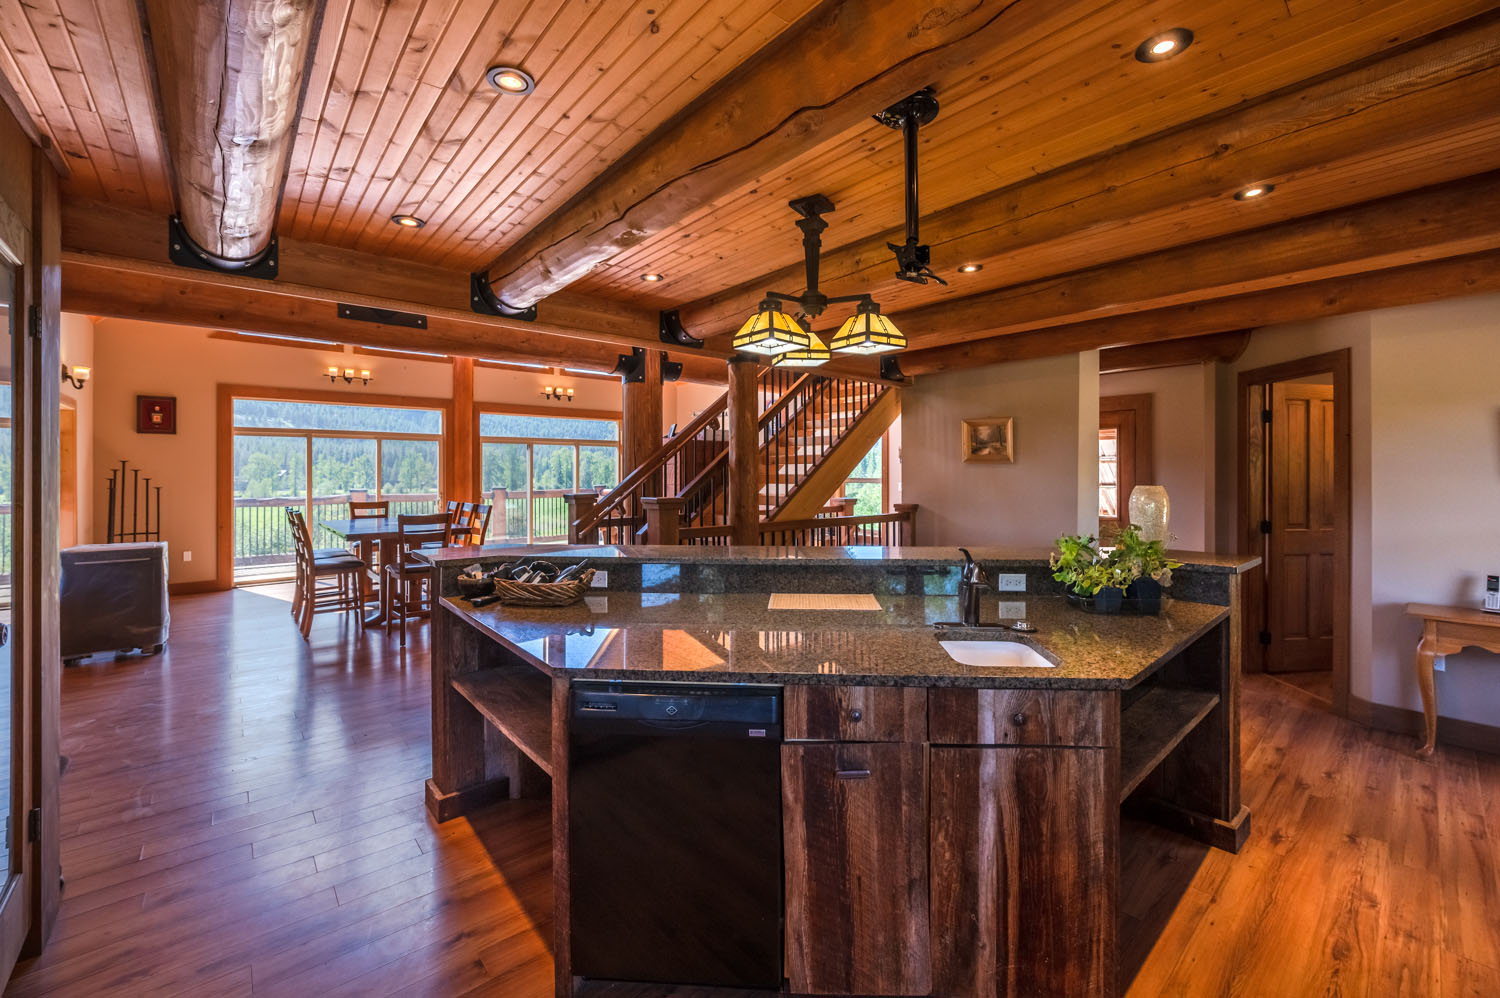 Willow springs ranch 36